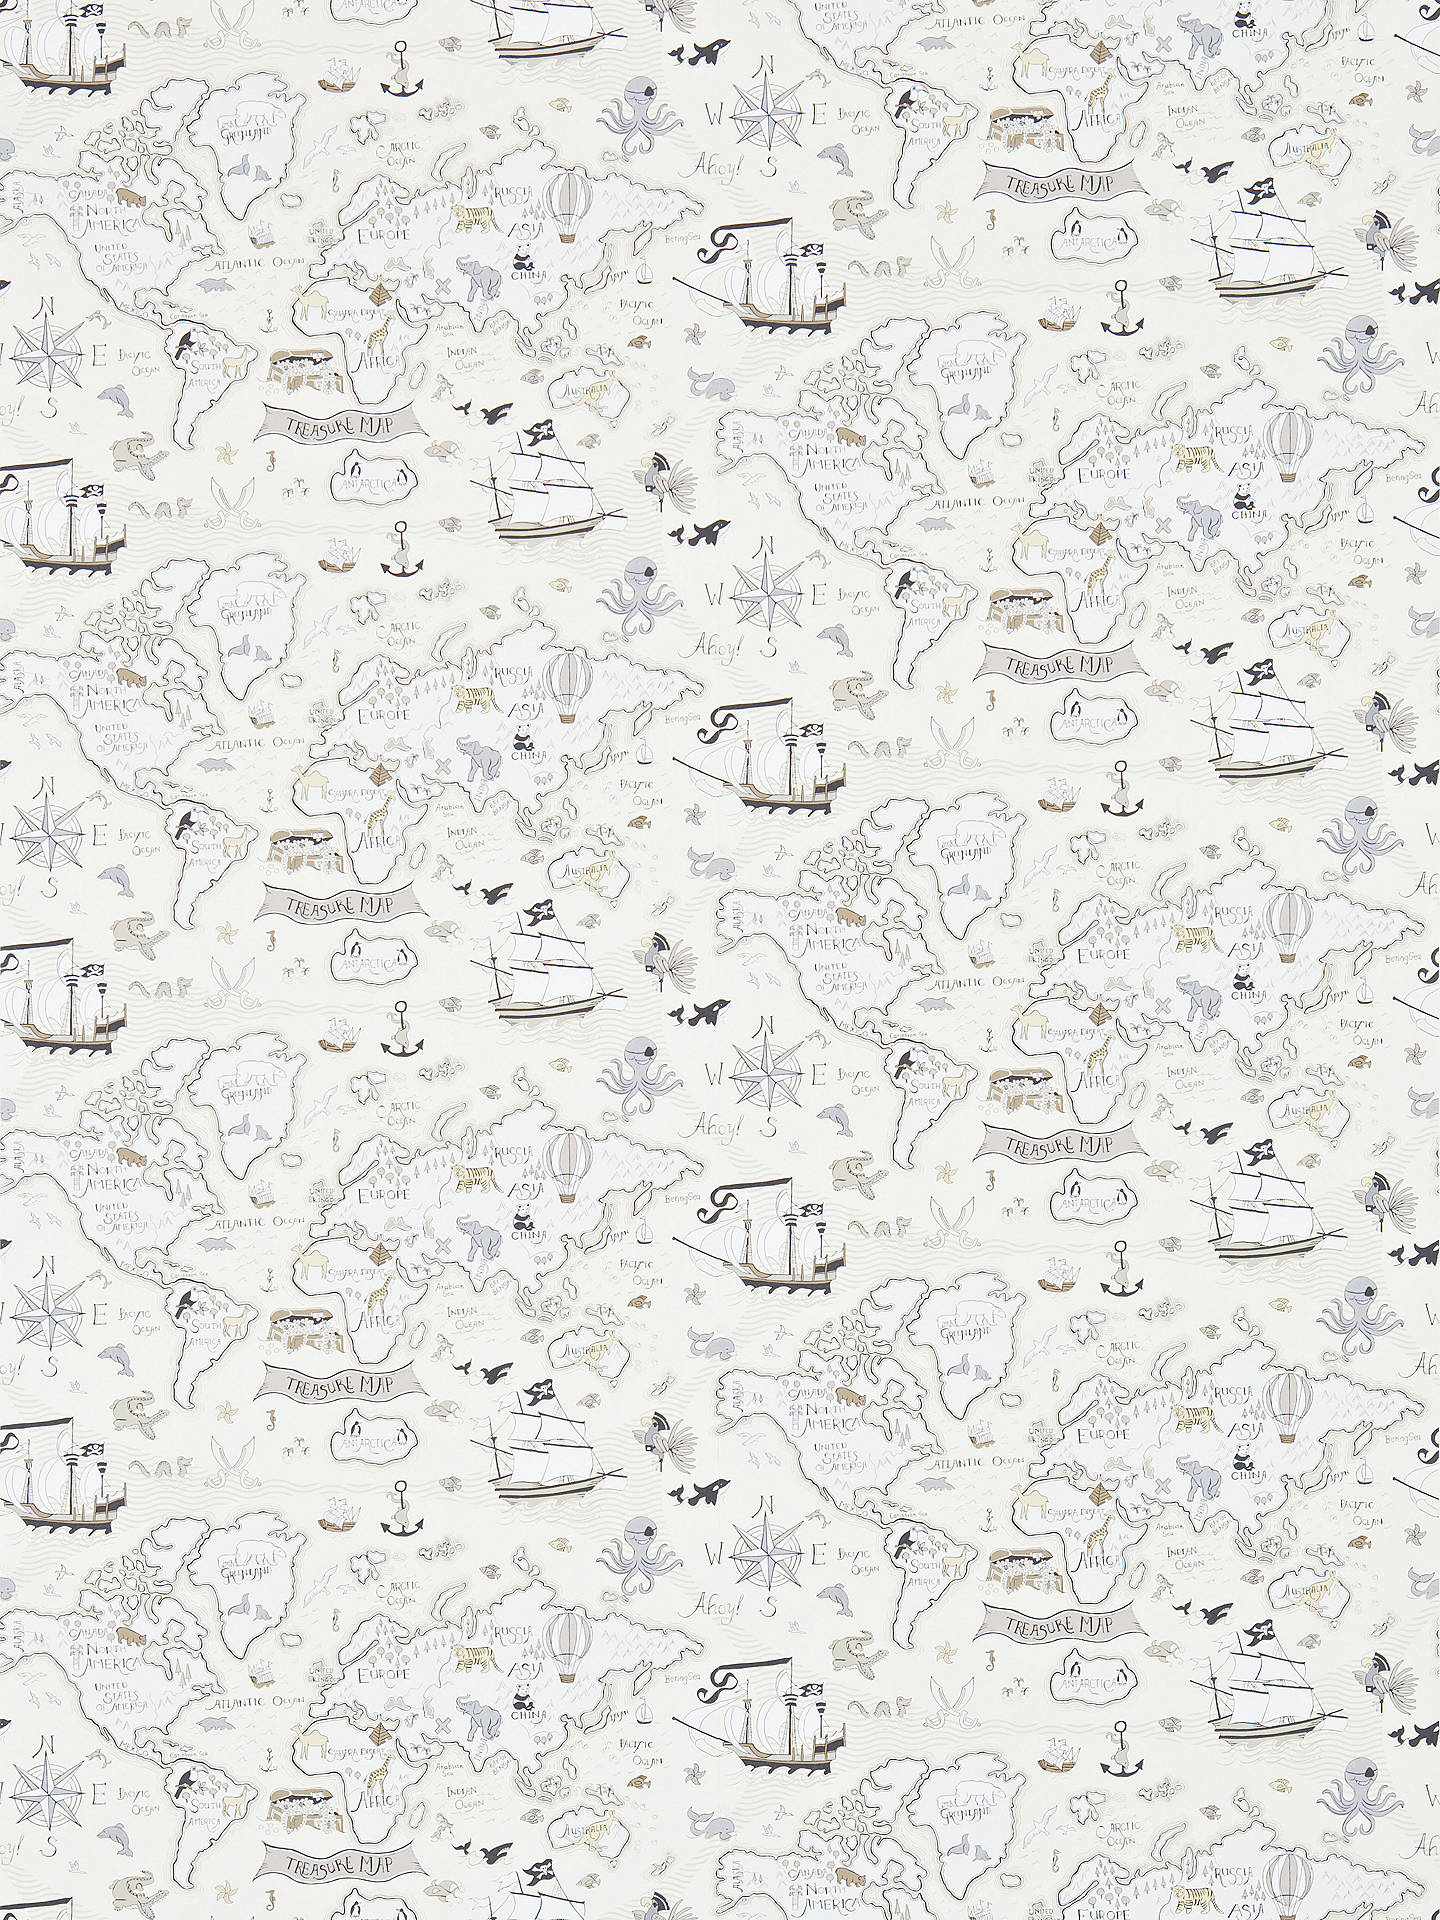 Buy Sanderson Treasure Map Wallpaper, Neutral, DLIT214039 Online at johnlewis.com